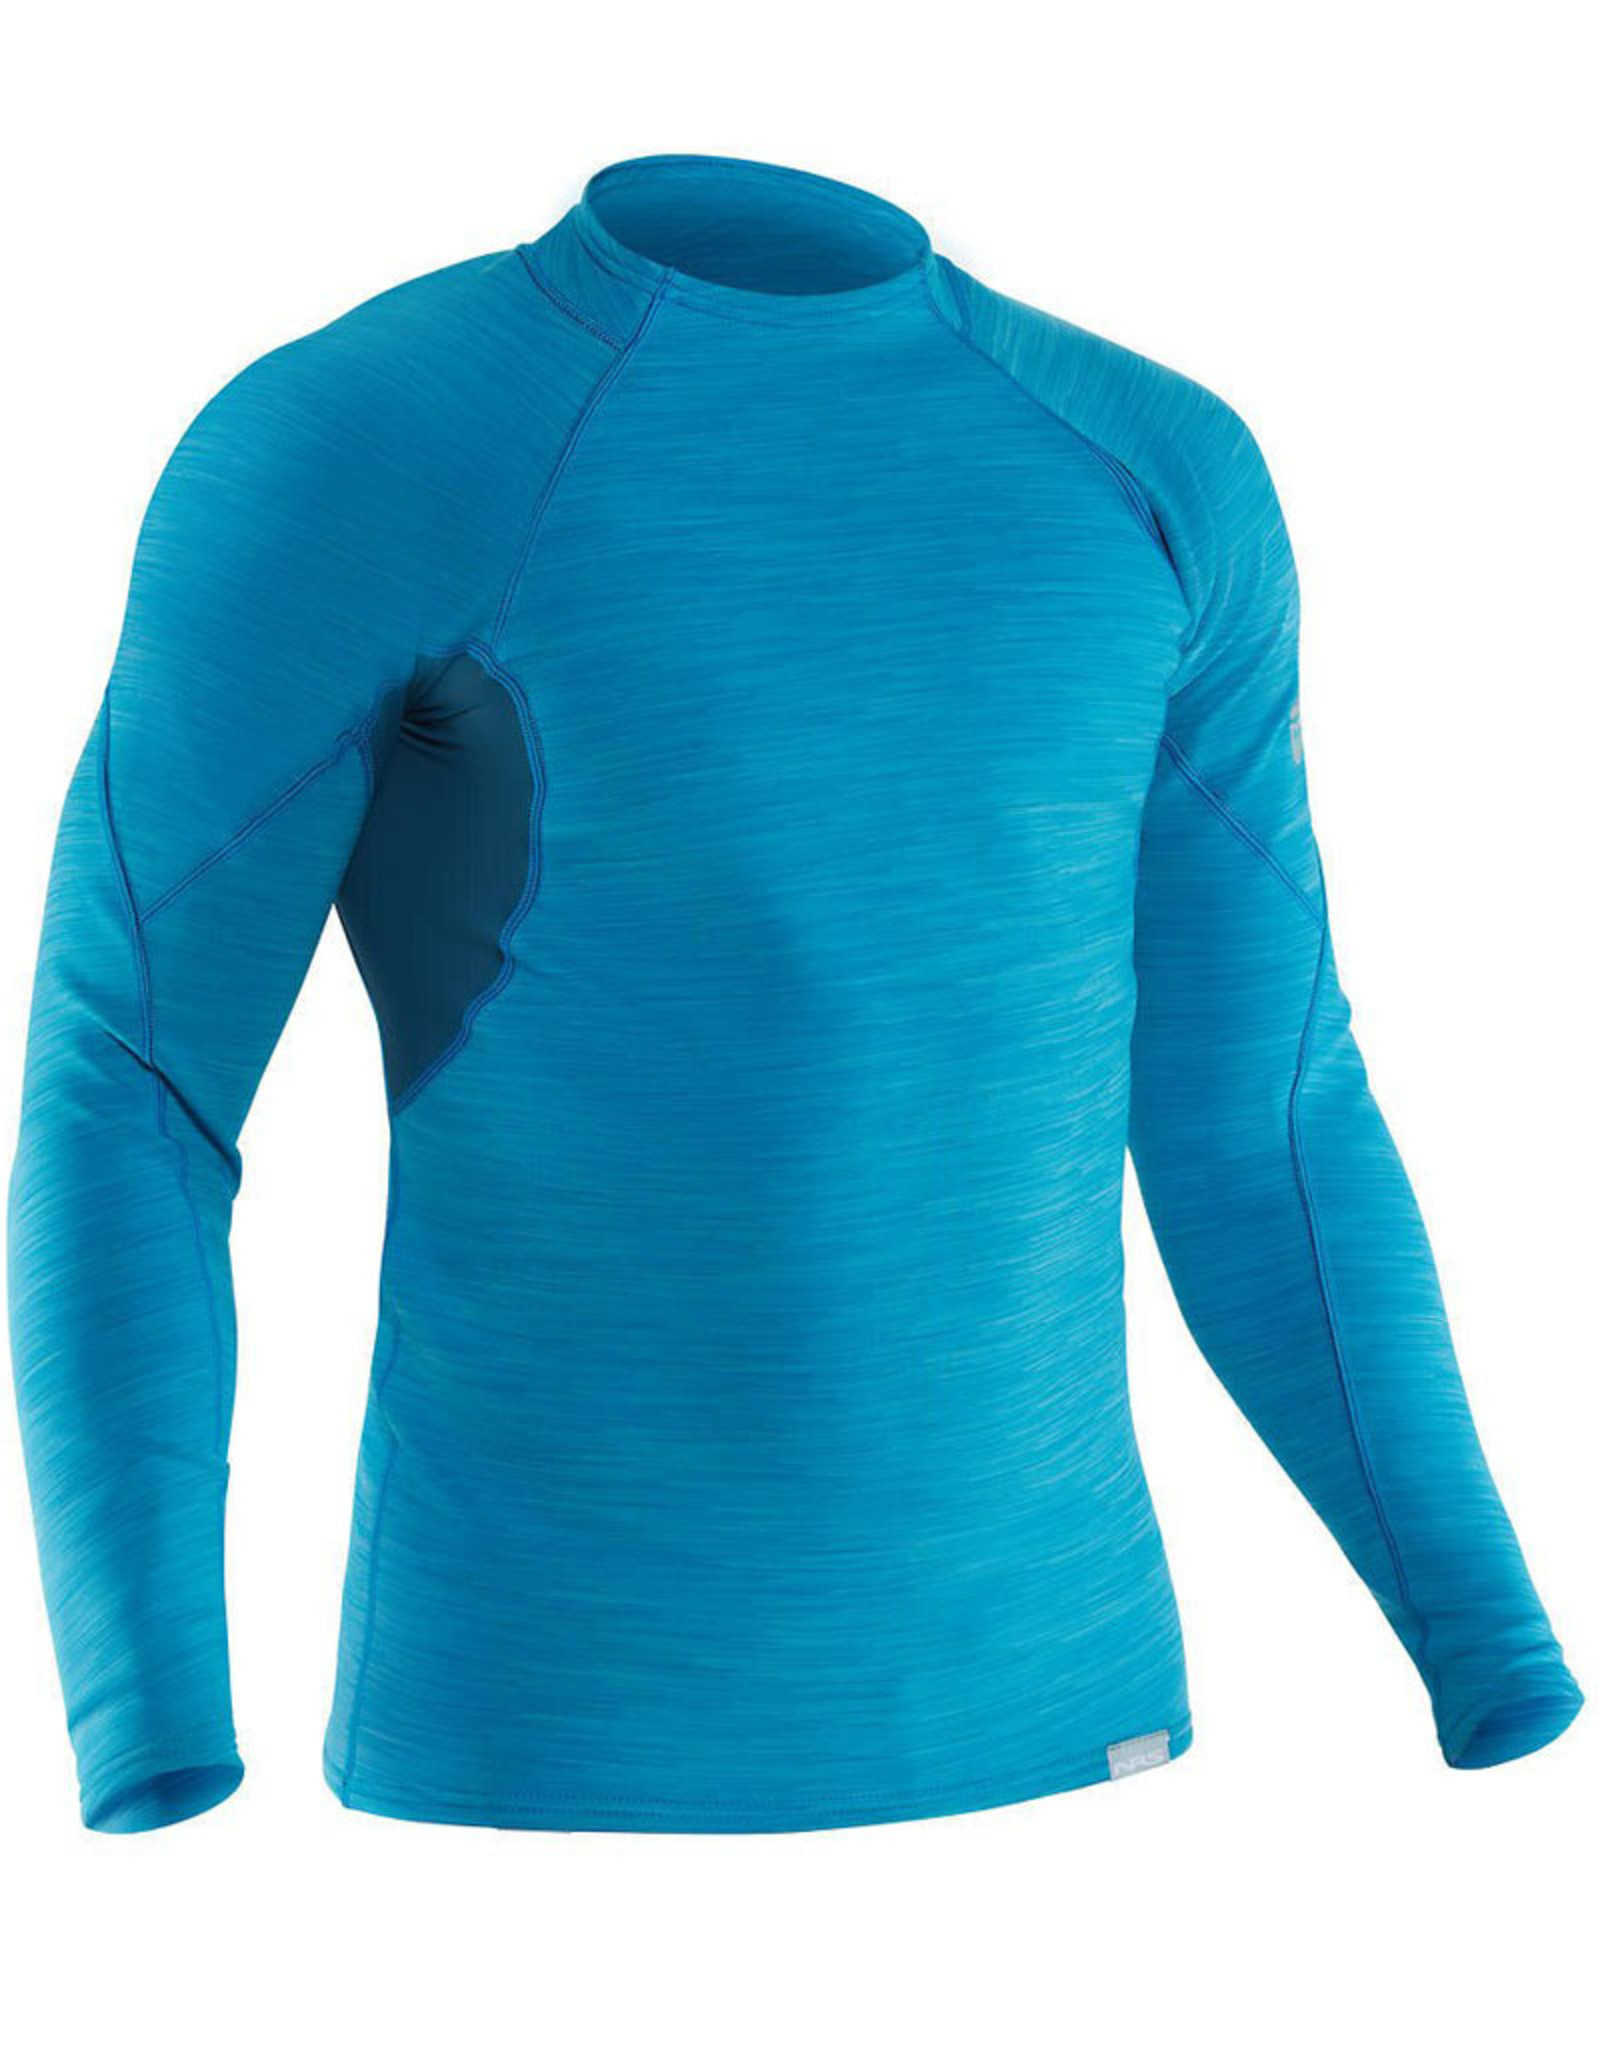 NRS NRS Hydroskin 0.5 L/S Shirt Closeout - Mens